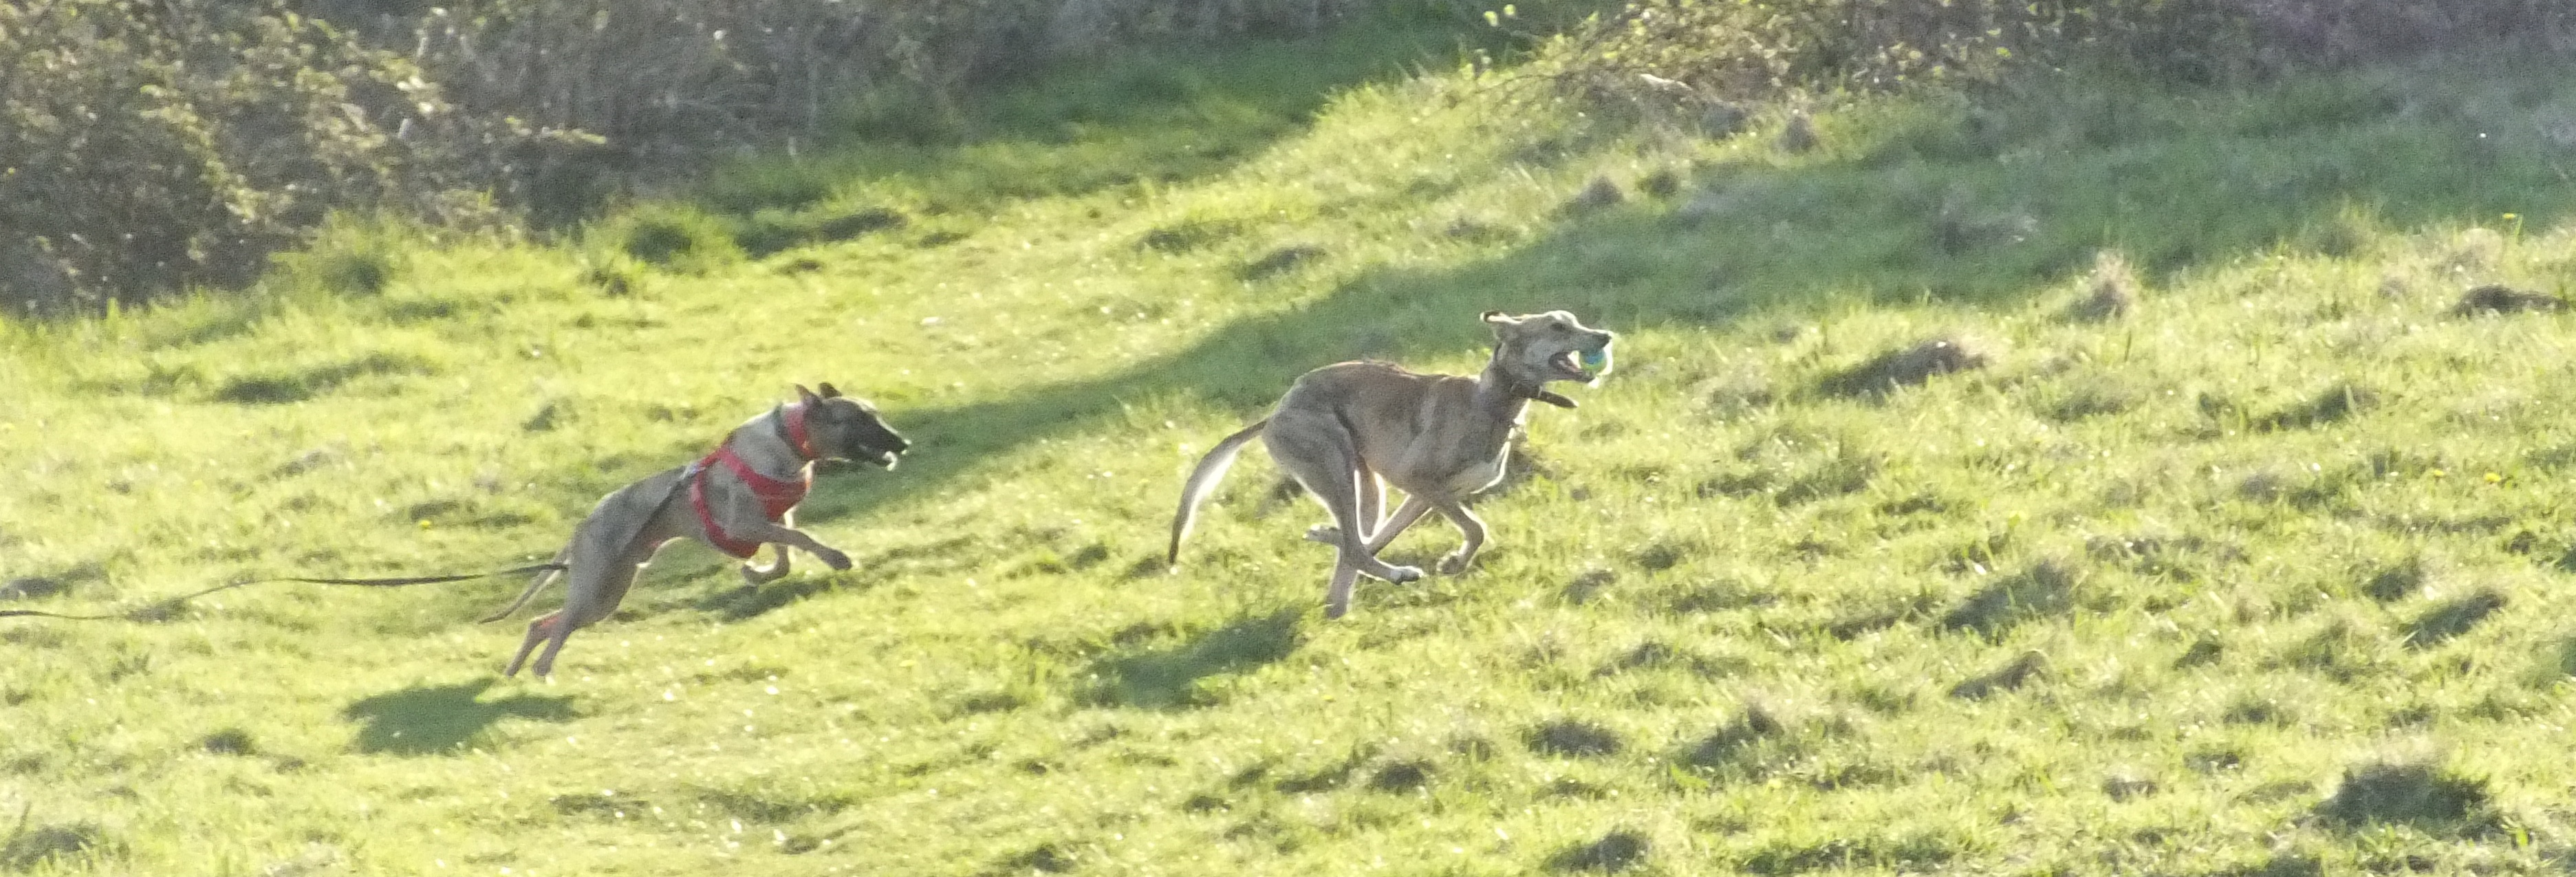 Alex & Millie chasing in the fields